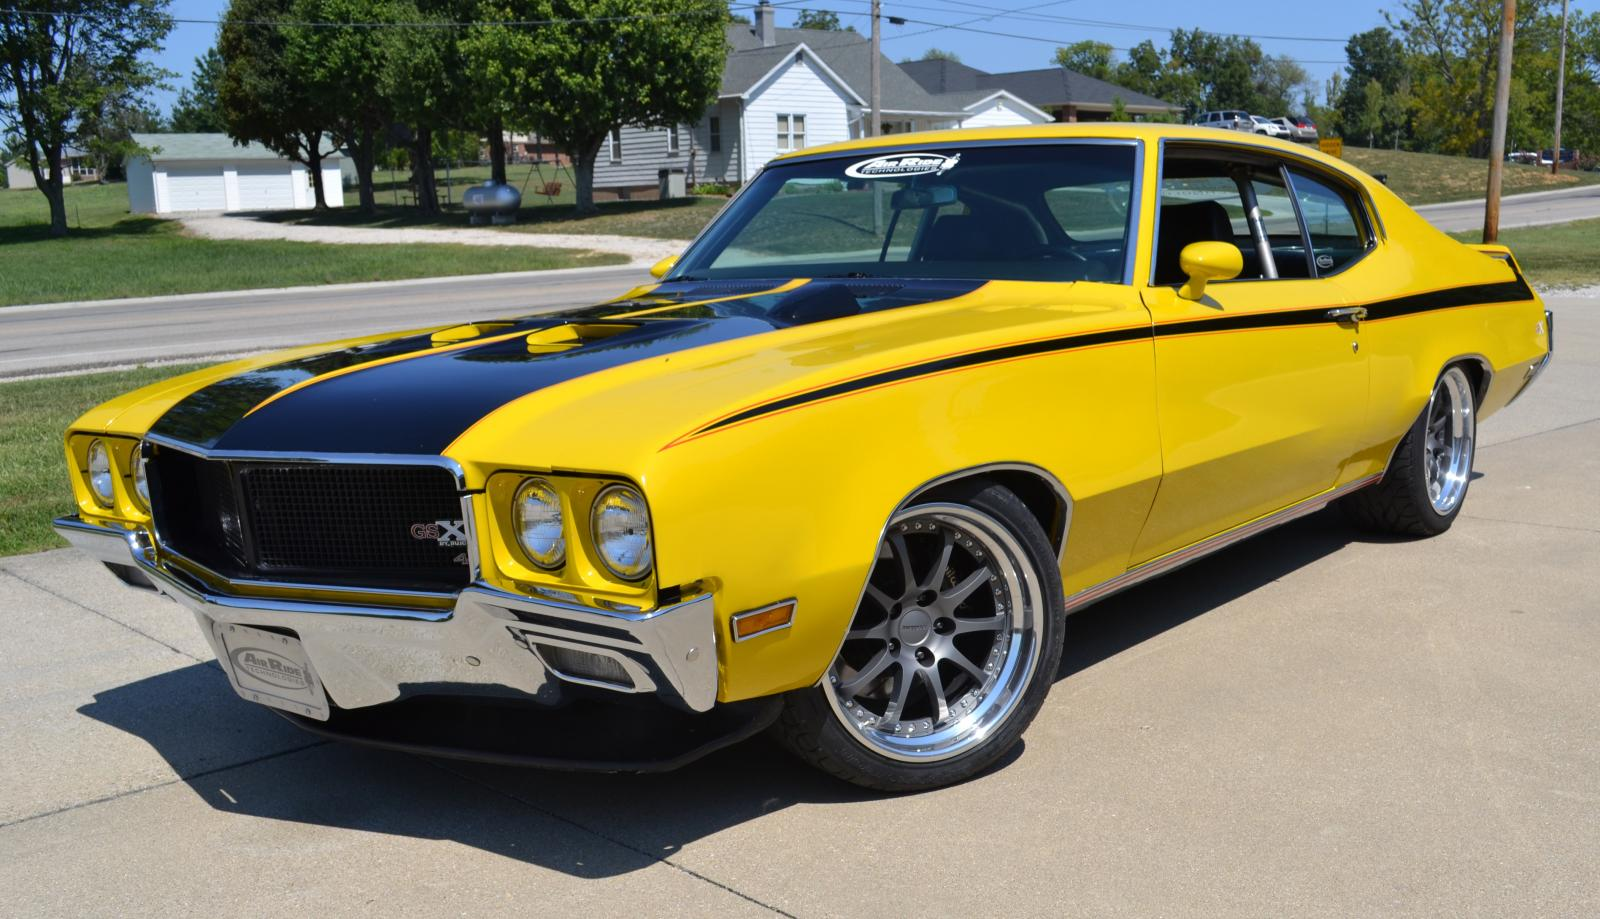 Fastest Classic Muscle Cars - Buick Skylark GSX